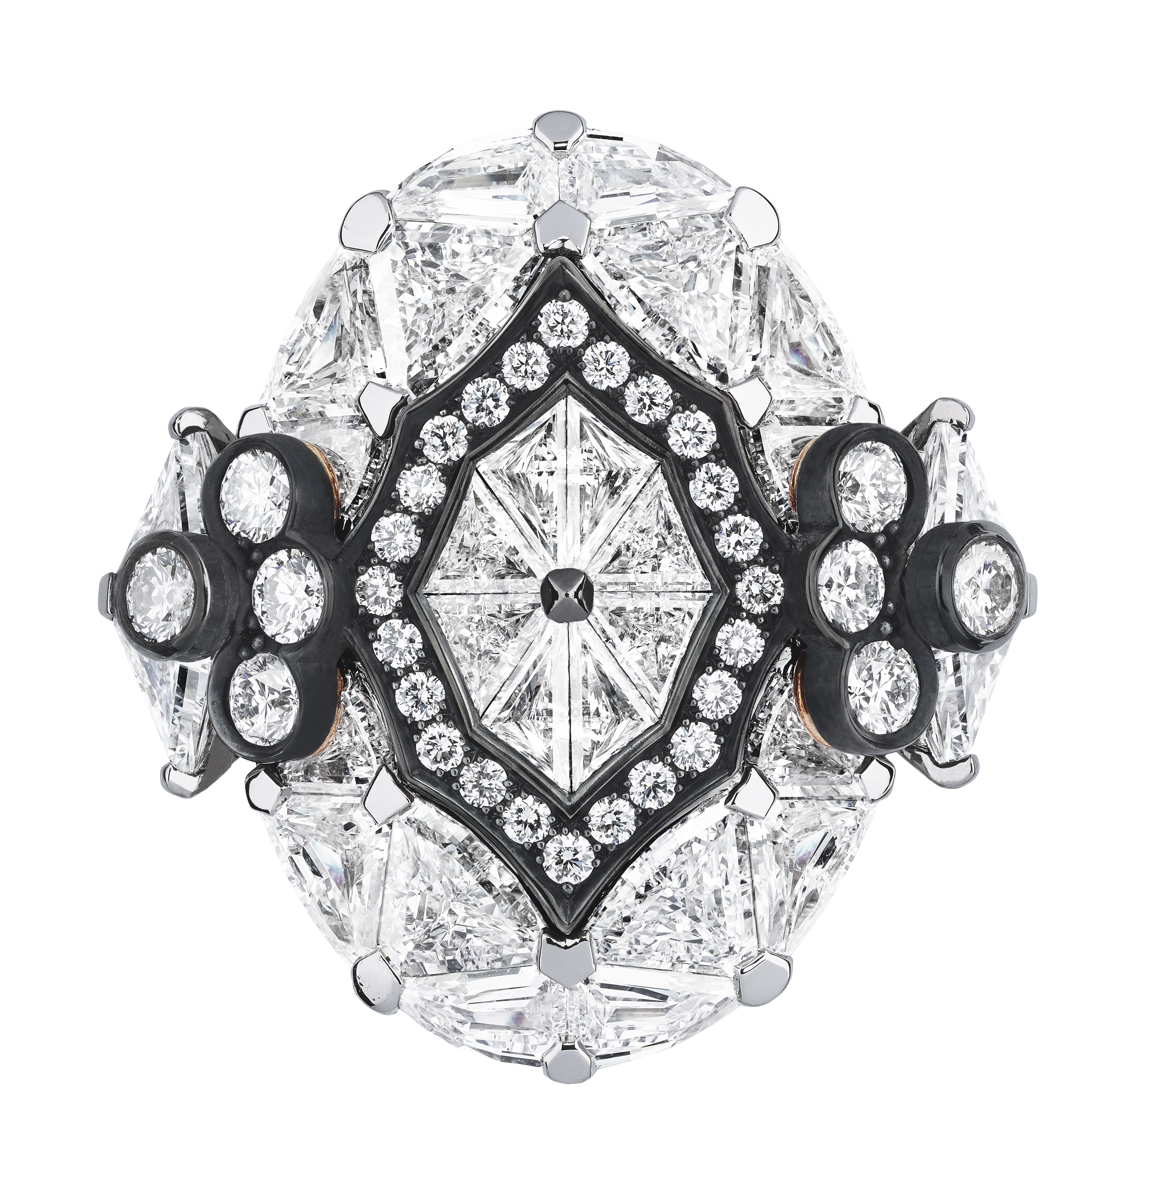 GALERIE DES GLACES RING